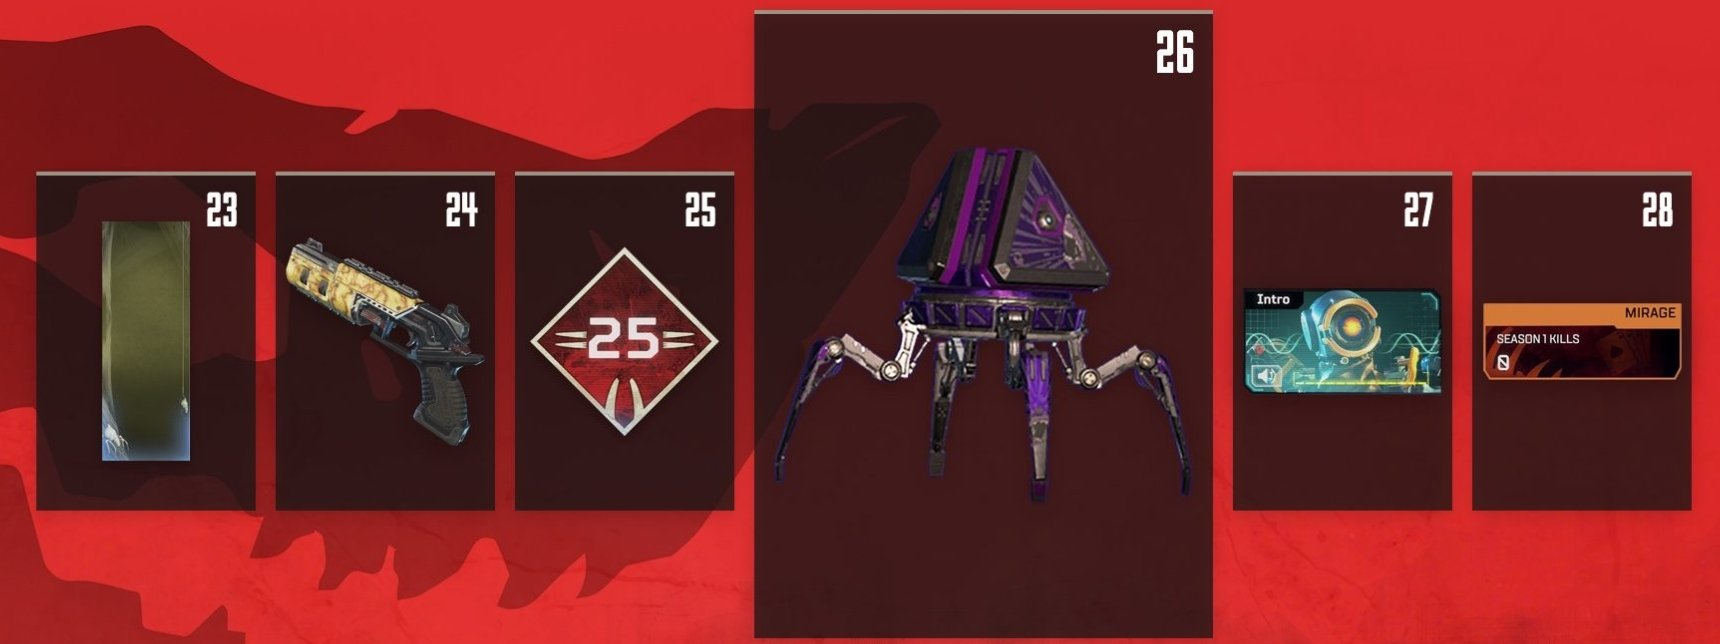 Apex Legends Battle Pass Rewards Levels 23-28